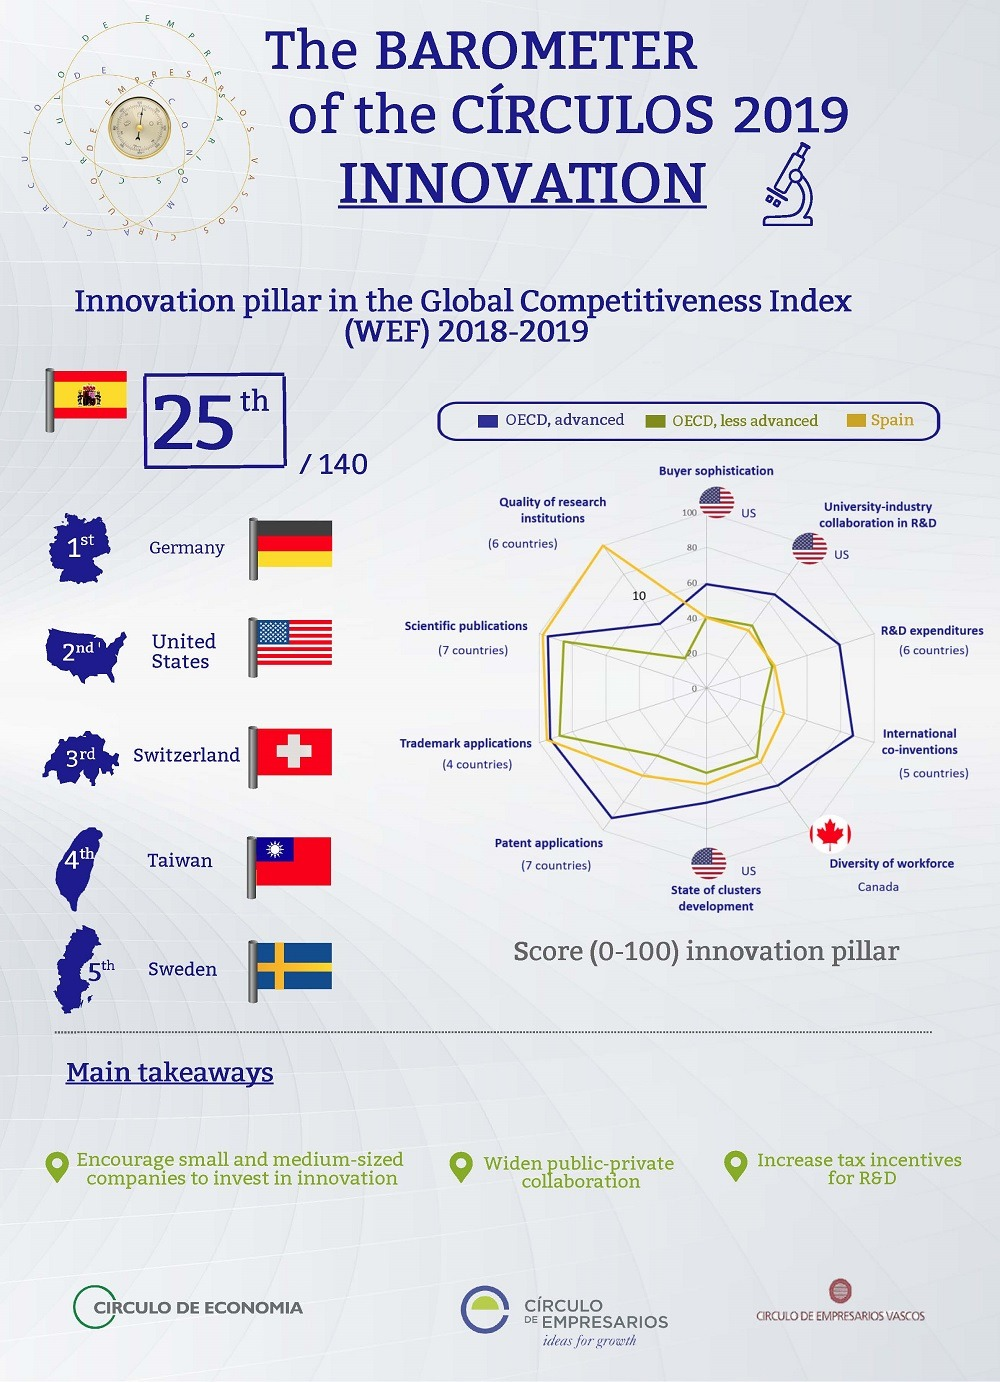 Innovation Infographic Barometer of the Circulos February 2019 Círculo de Empresarios